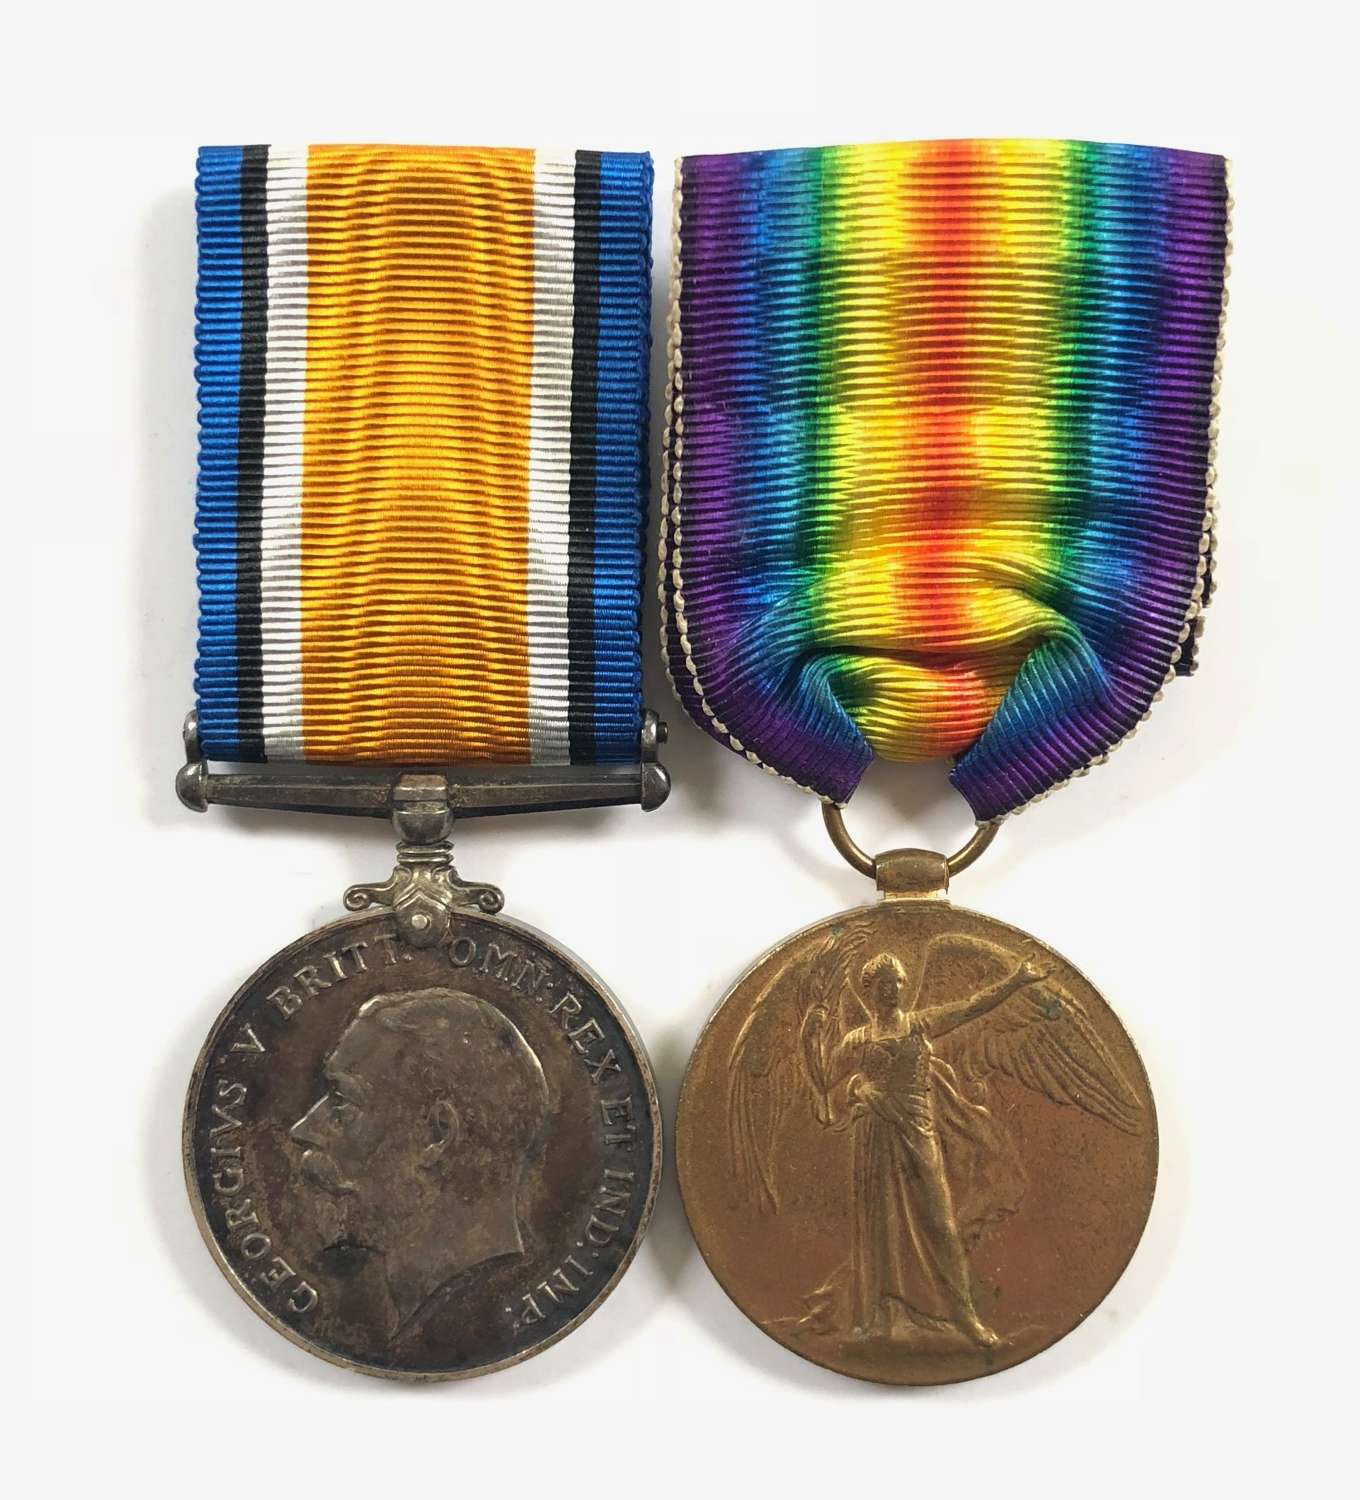 WW1 6th Bn Somerset Light Infantry Pair of Medals